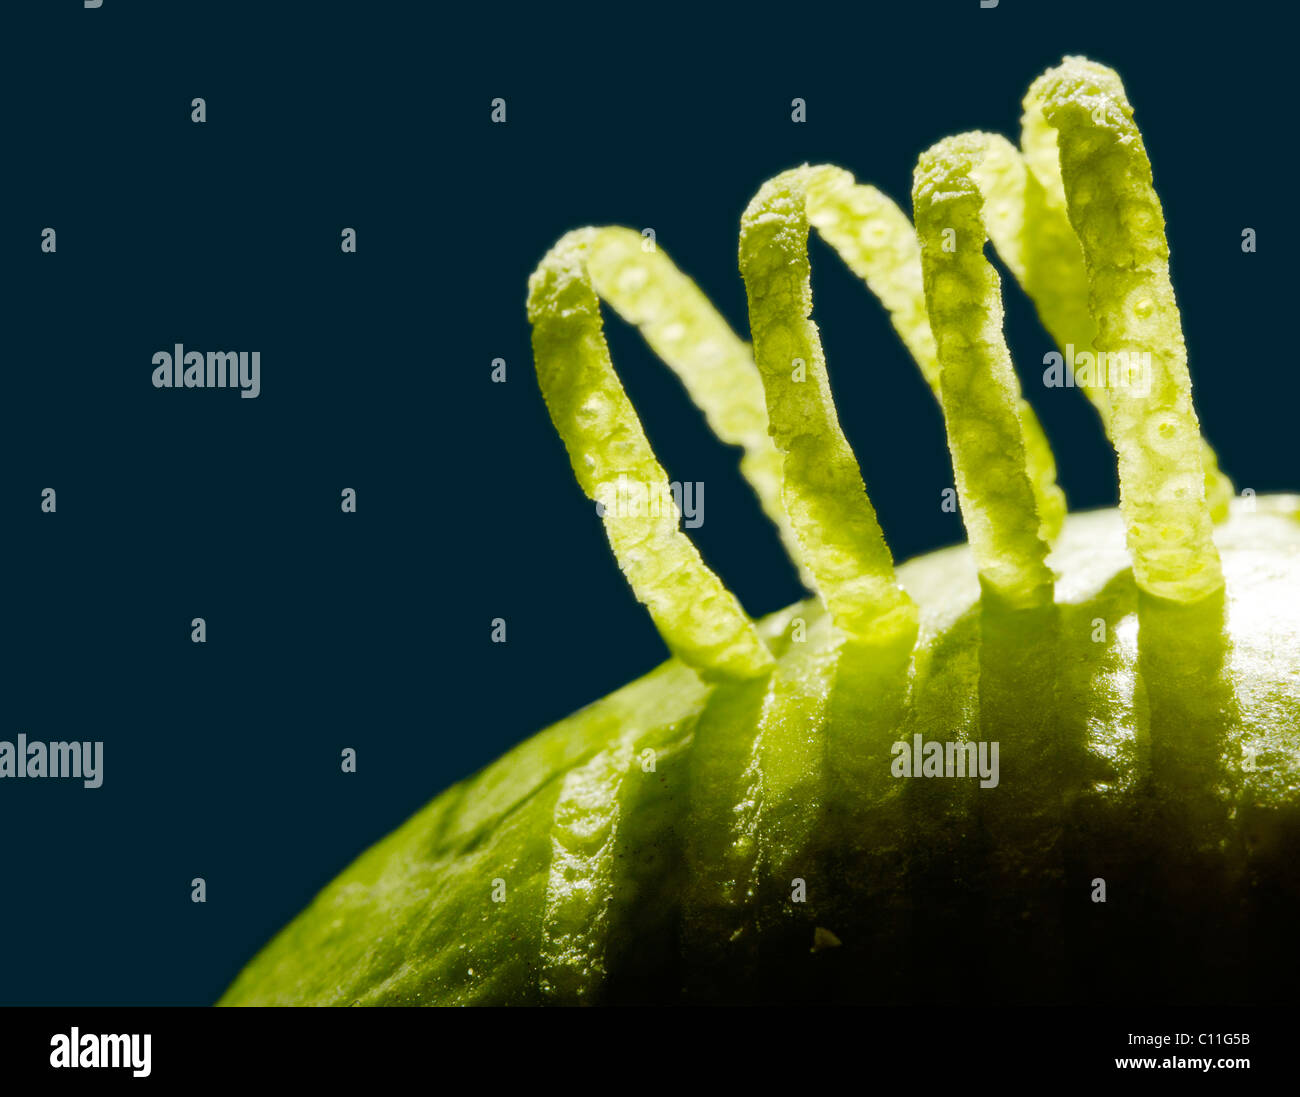 Curls of peel on a Lime, close-up - Stock Image